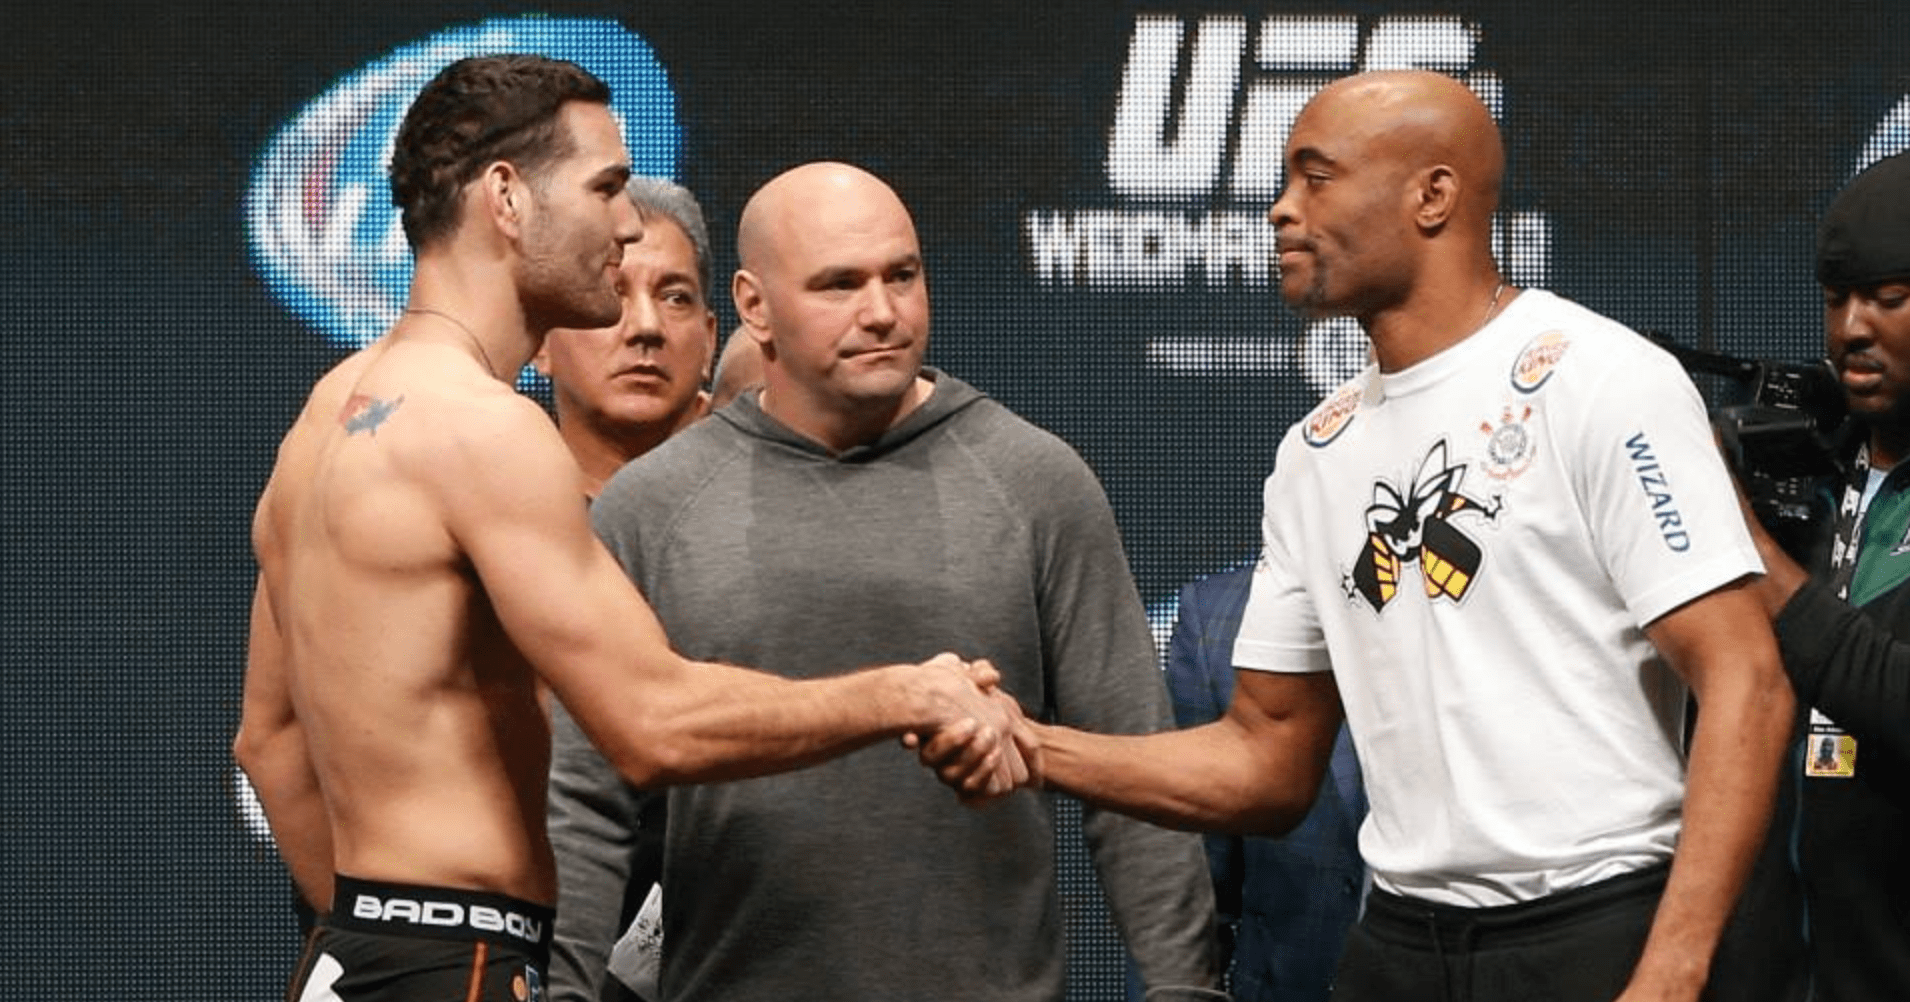 UFC: Anderson Silva Wanted To Retire Prior To First Chris Weidman Fight